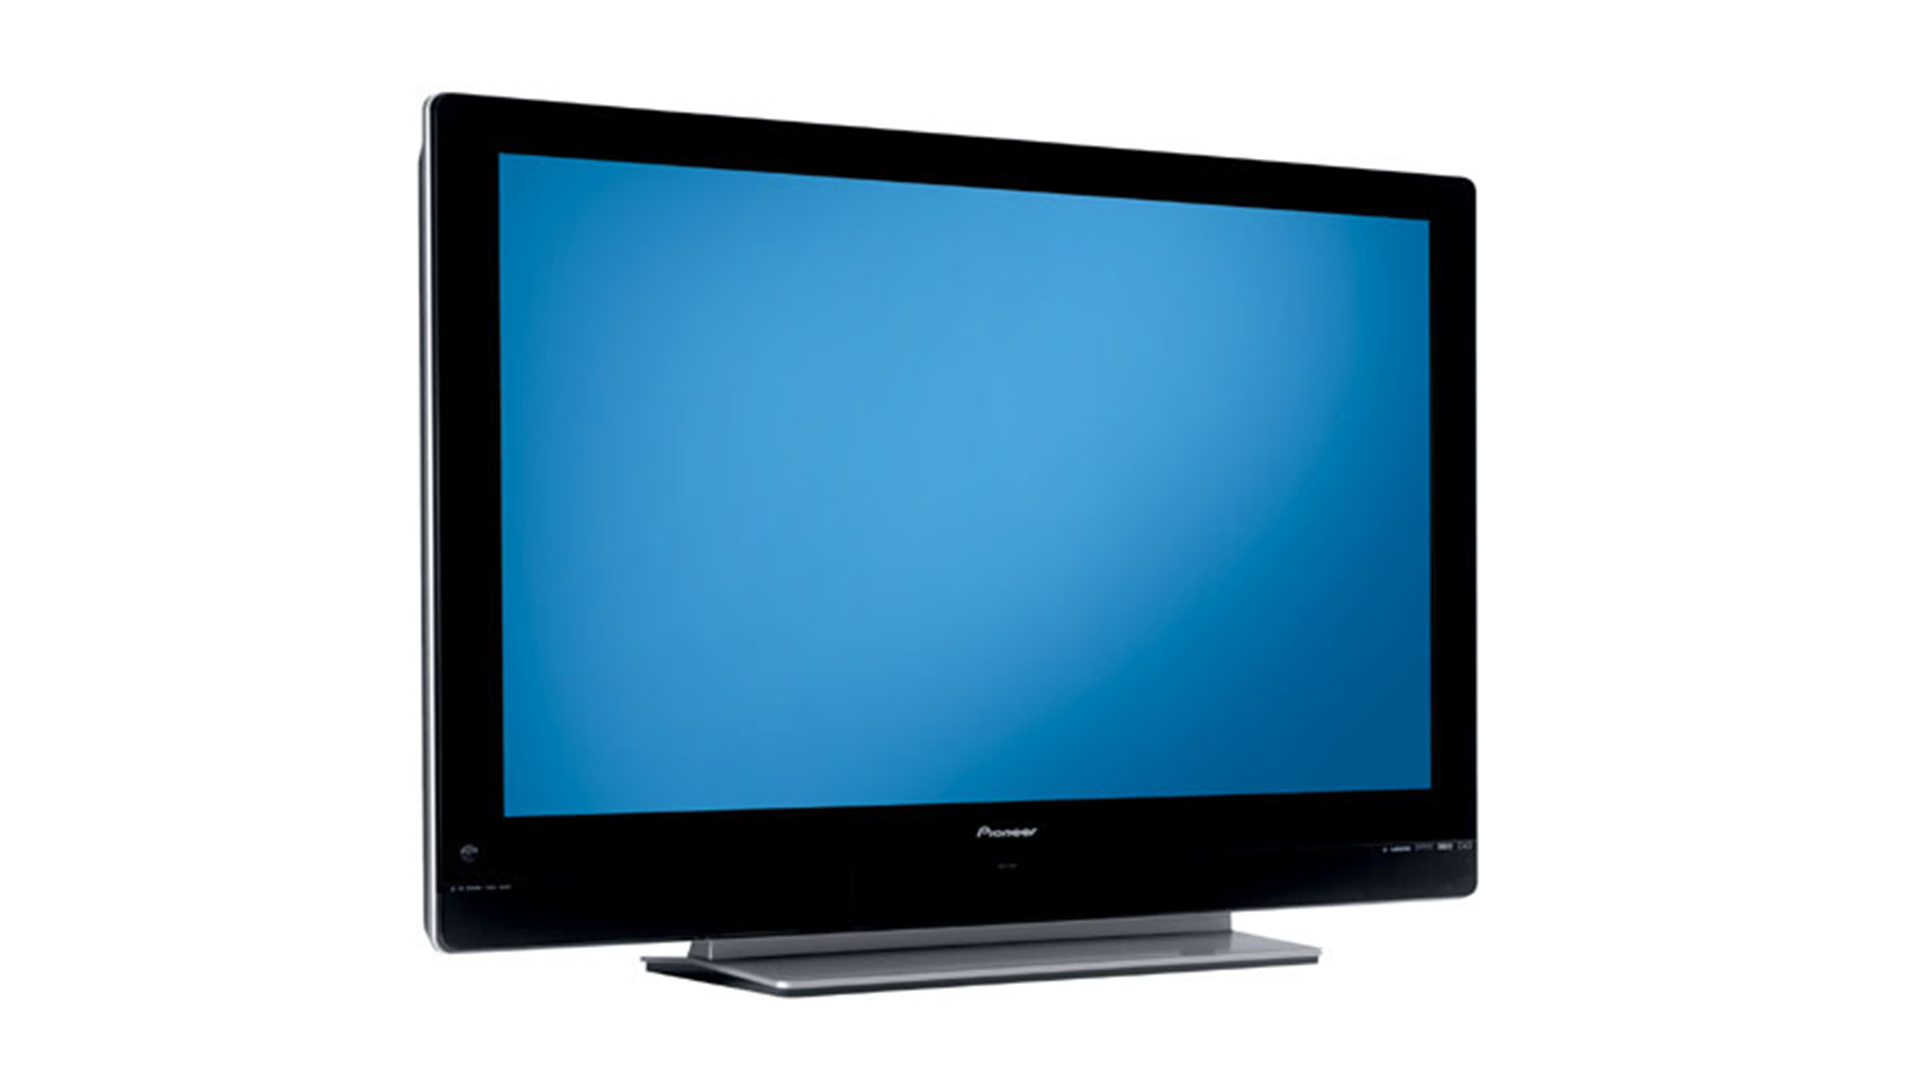 The Pioneer PDP-436SXE 43in Plasma television. The Pioneer's were often seen as the best plasmas available until the company decided to discontinue television production in 2010